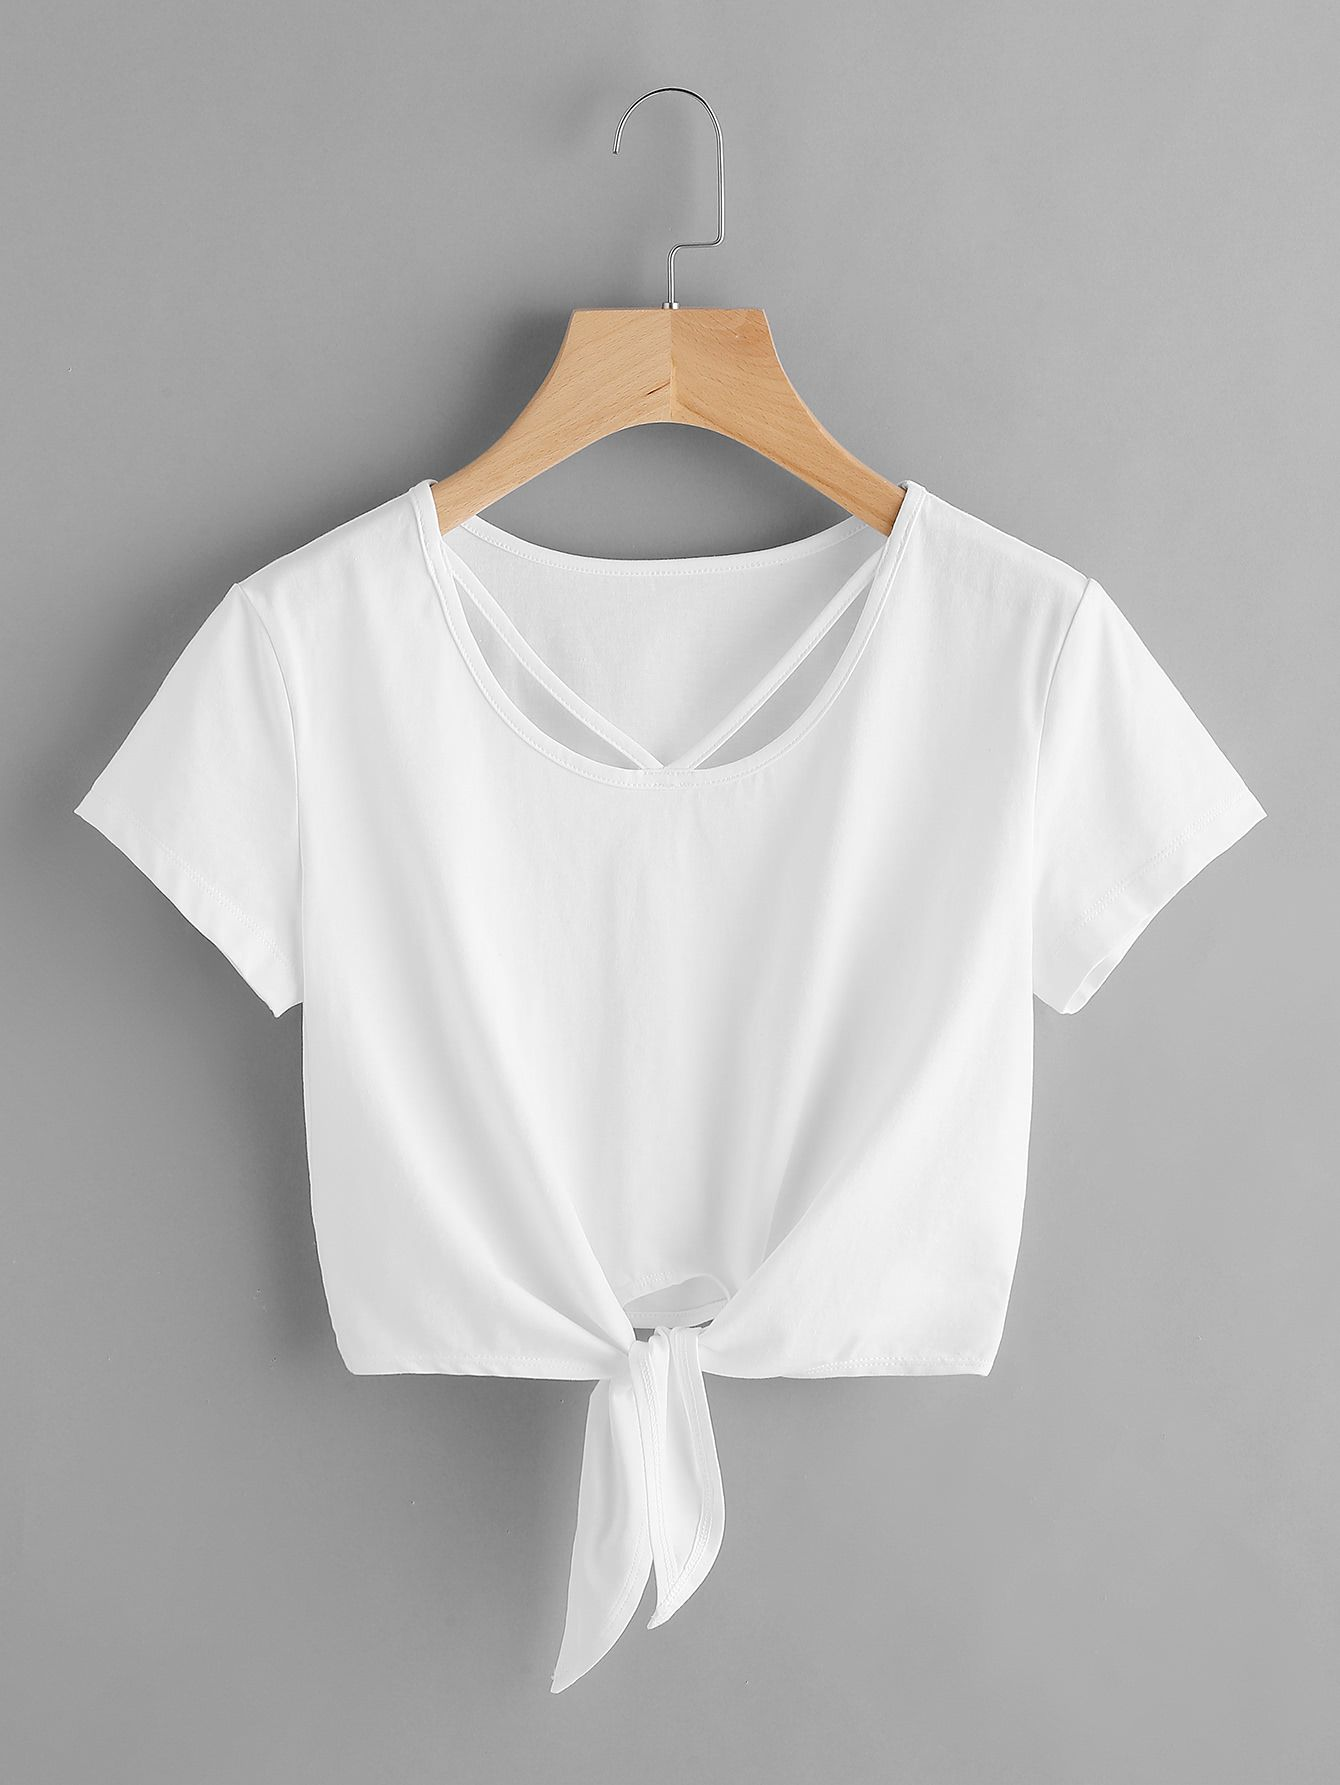 708e42737028a http   m.shein.com us V-Strap-Neck-Knot-Front-Crop-Tee -p-363267-cat-1738.html